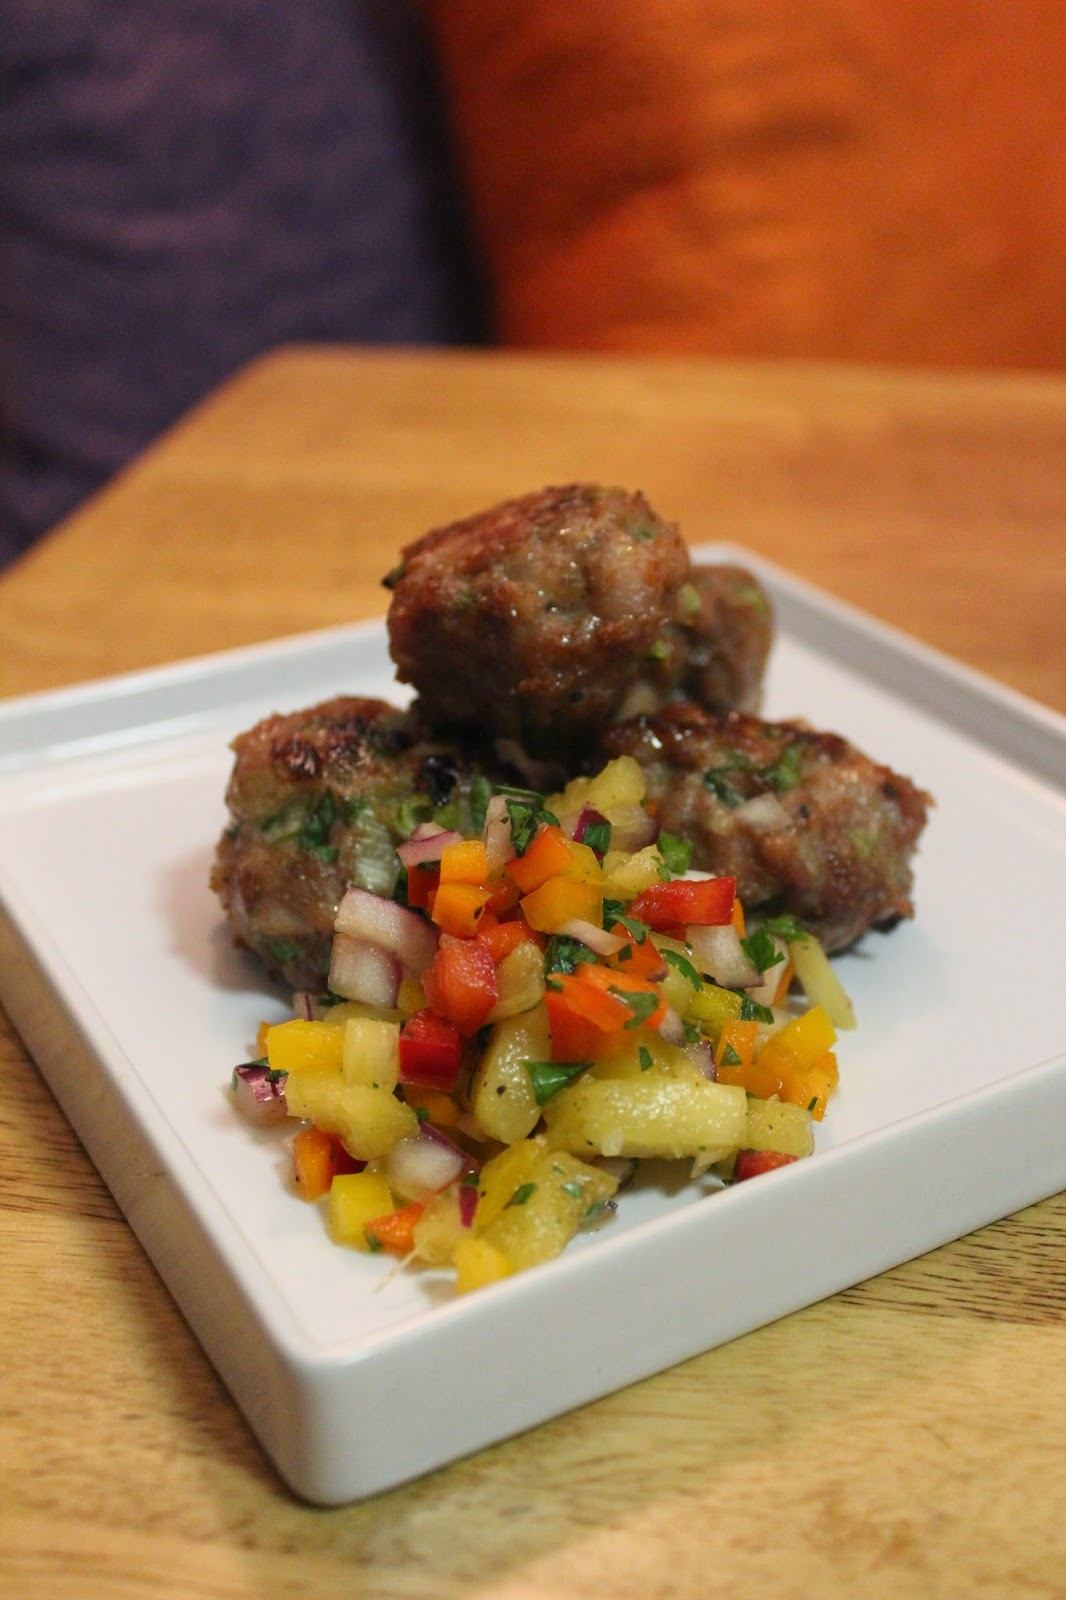 Glistening like Beyoncé: Jerk Chicken Meatballs with Pineapple Salsa